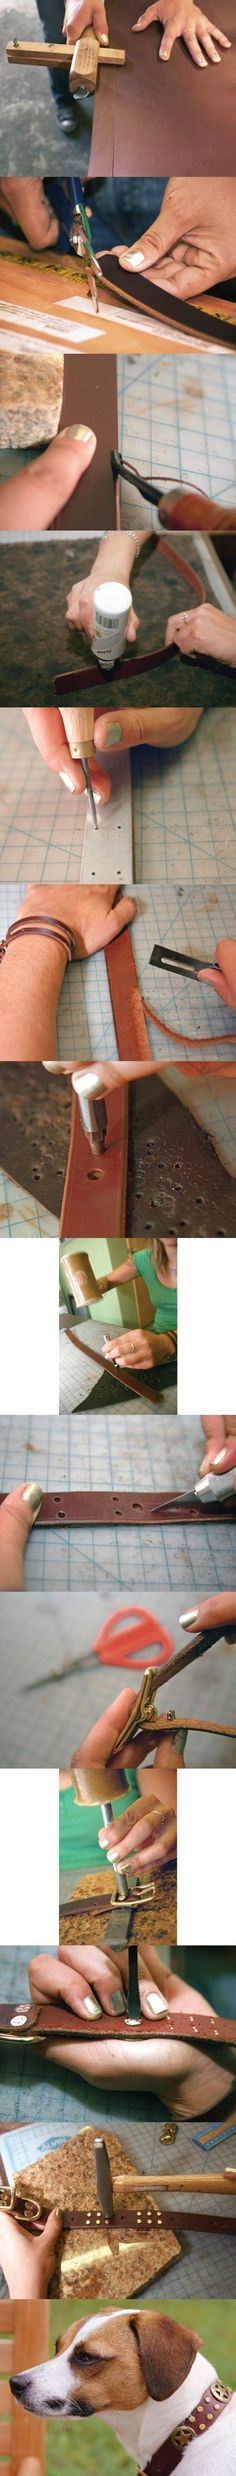 DIY Stylish Leather Dog Collar